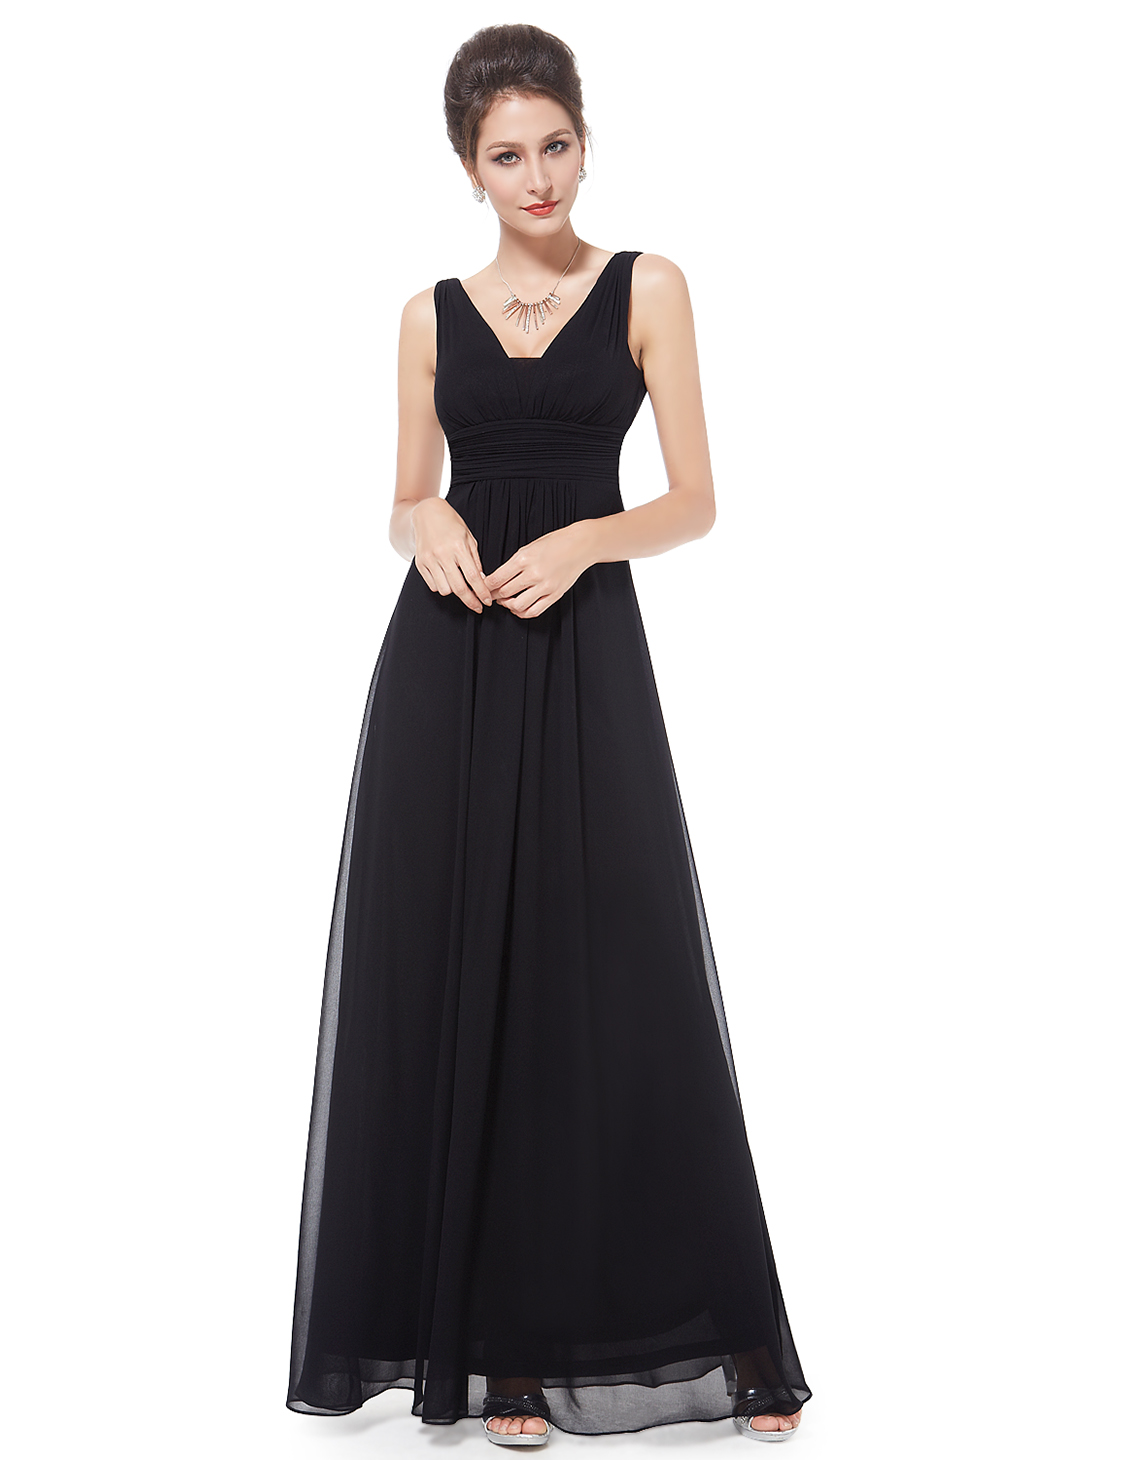 Need a gorgeous gown for your next social event or black tie gala? Find the perfect women's formal dress or evening gown at Dillard's, your dresses & gowns destination.